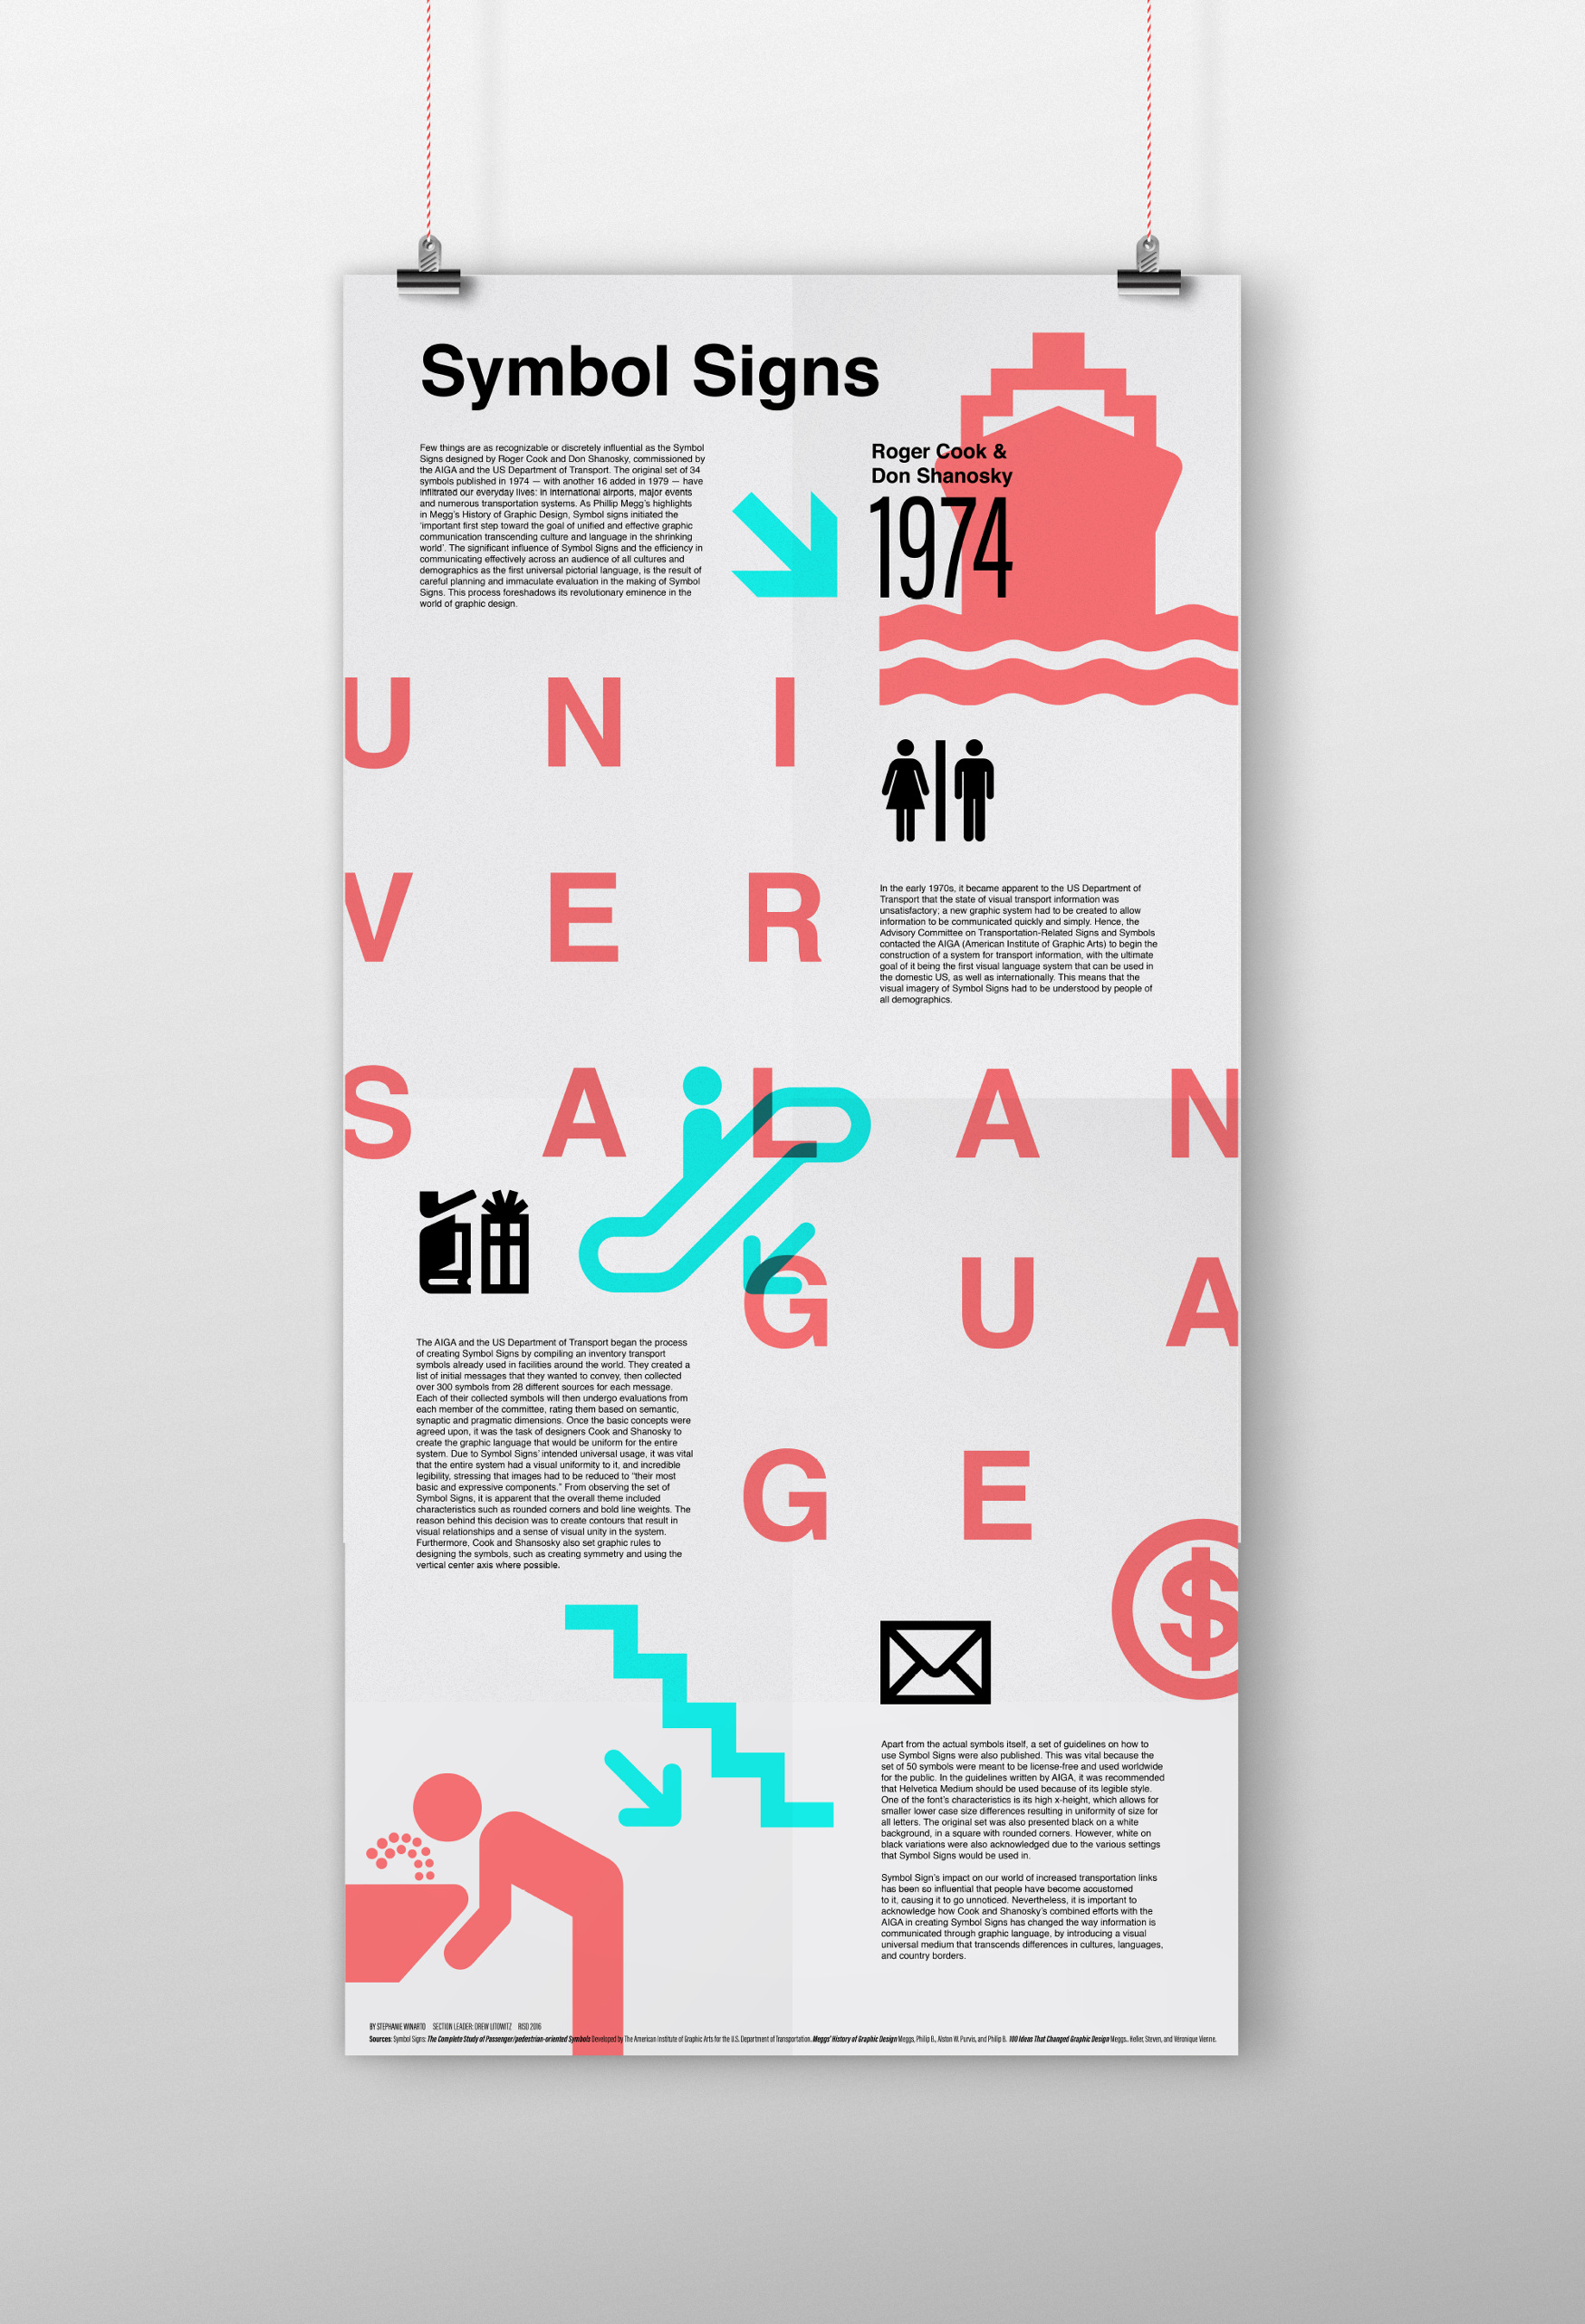 stephaniewinarto poster and essay on the set of symbol signs created by roger cook and don shanosky for the aiga and the us department of transportation risd graphic design